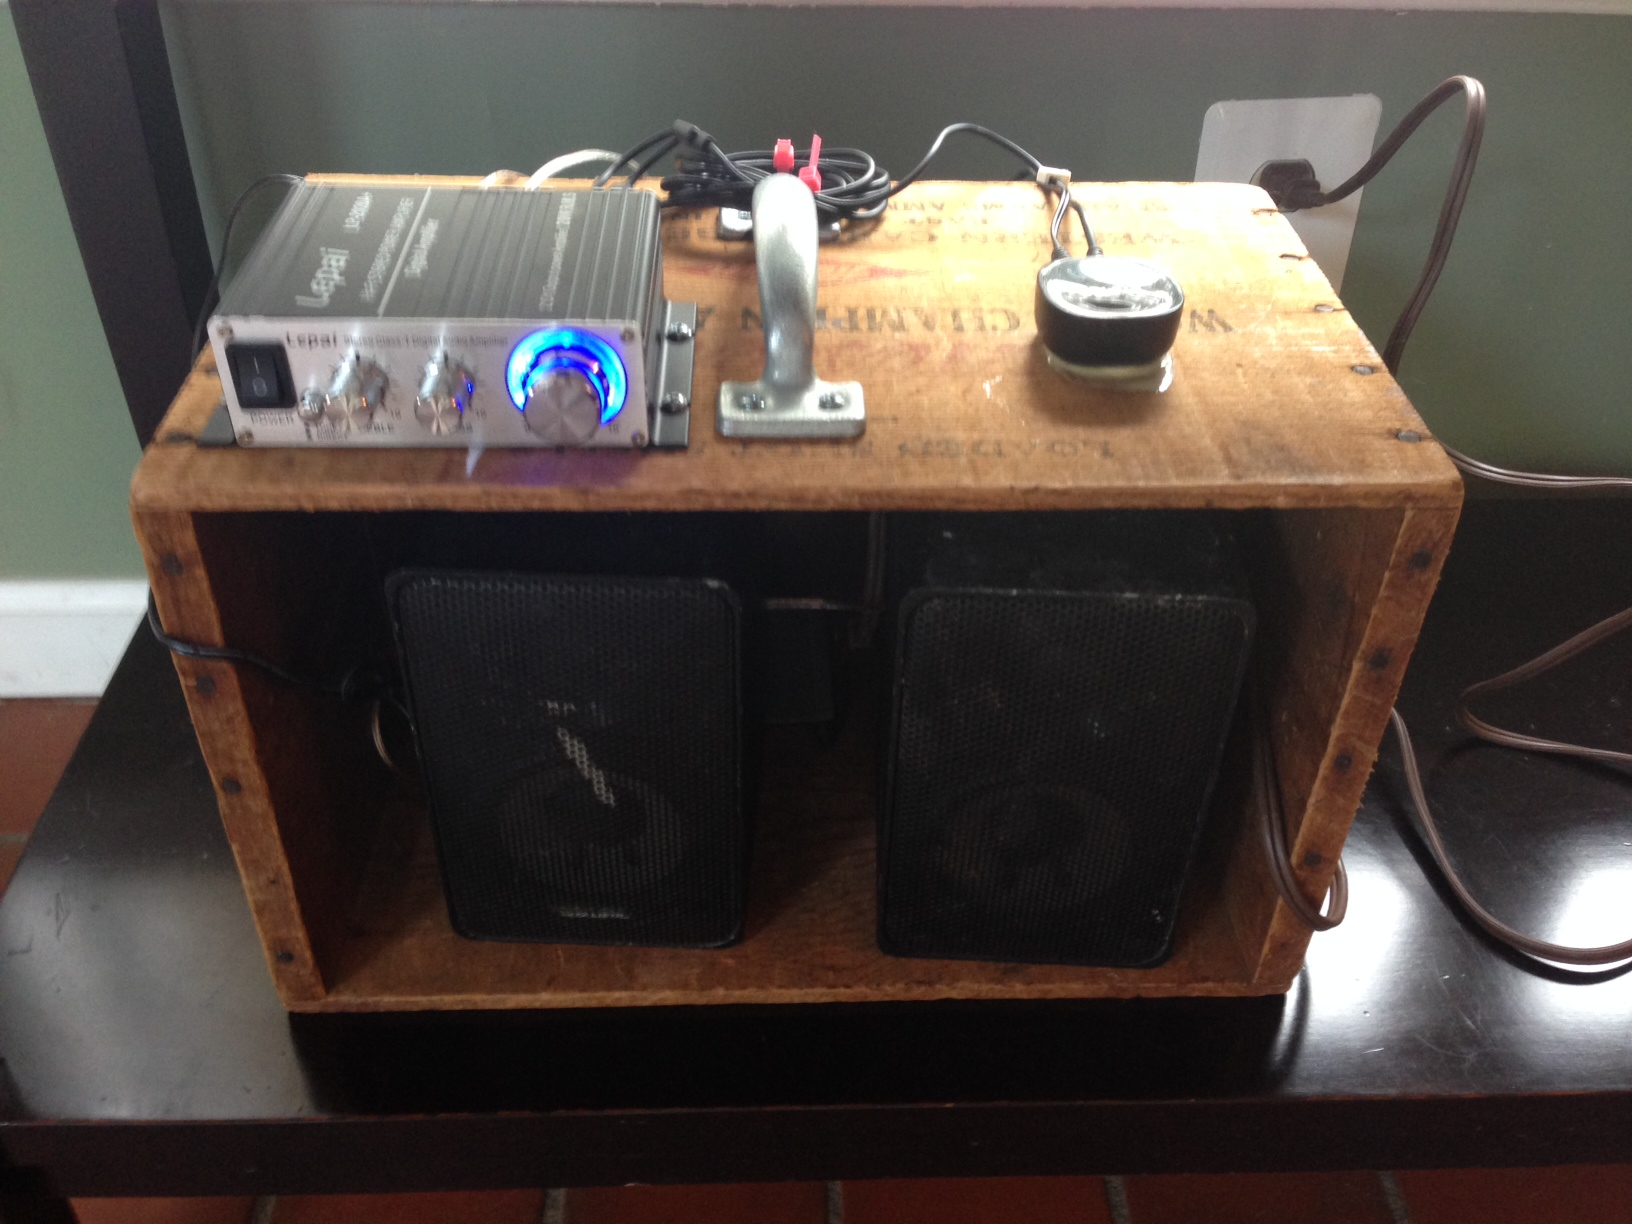 Poor Man's SONOS: How To Make a Badass Bluetooth Audio System from Amo Box and Old Radio Shack Speakers